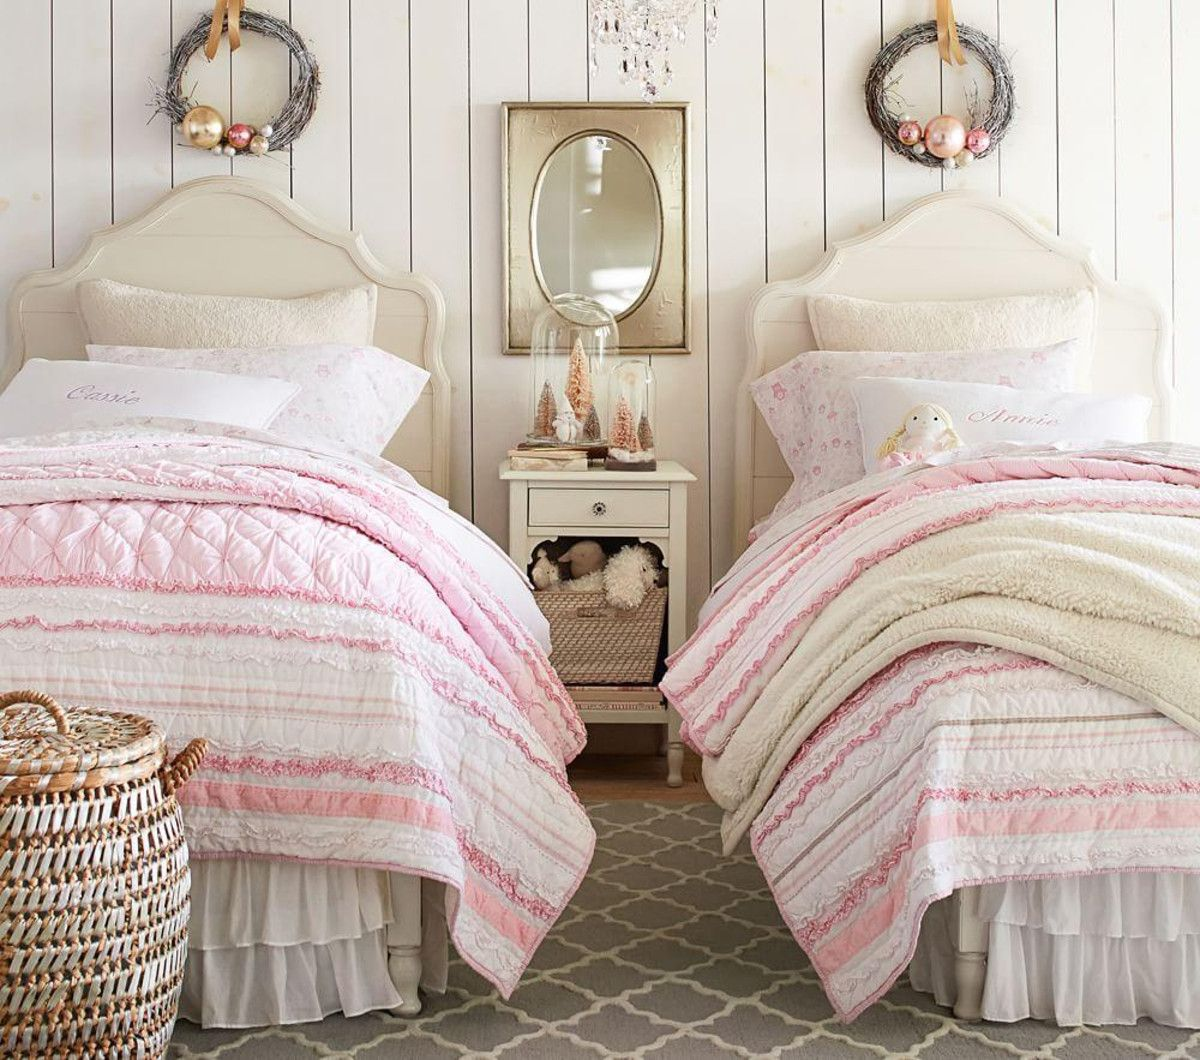 Juliette Bed French White Pottery Barn Kids Kid room